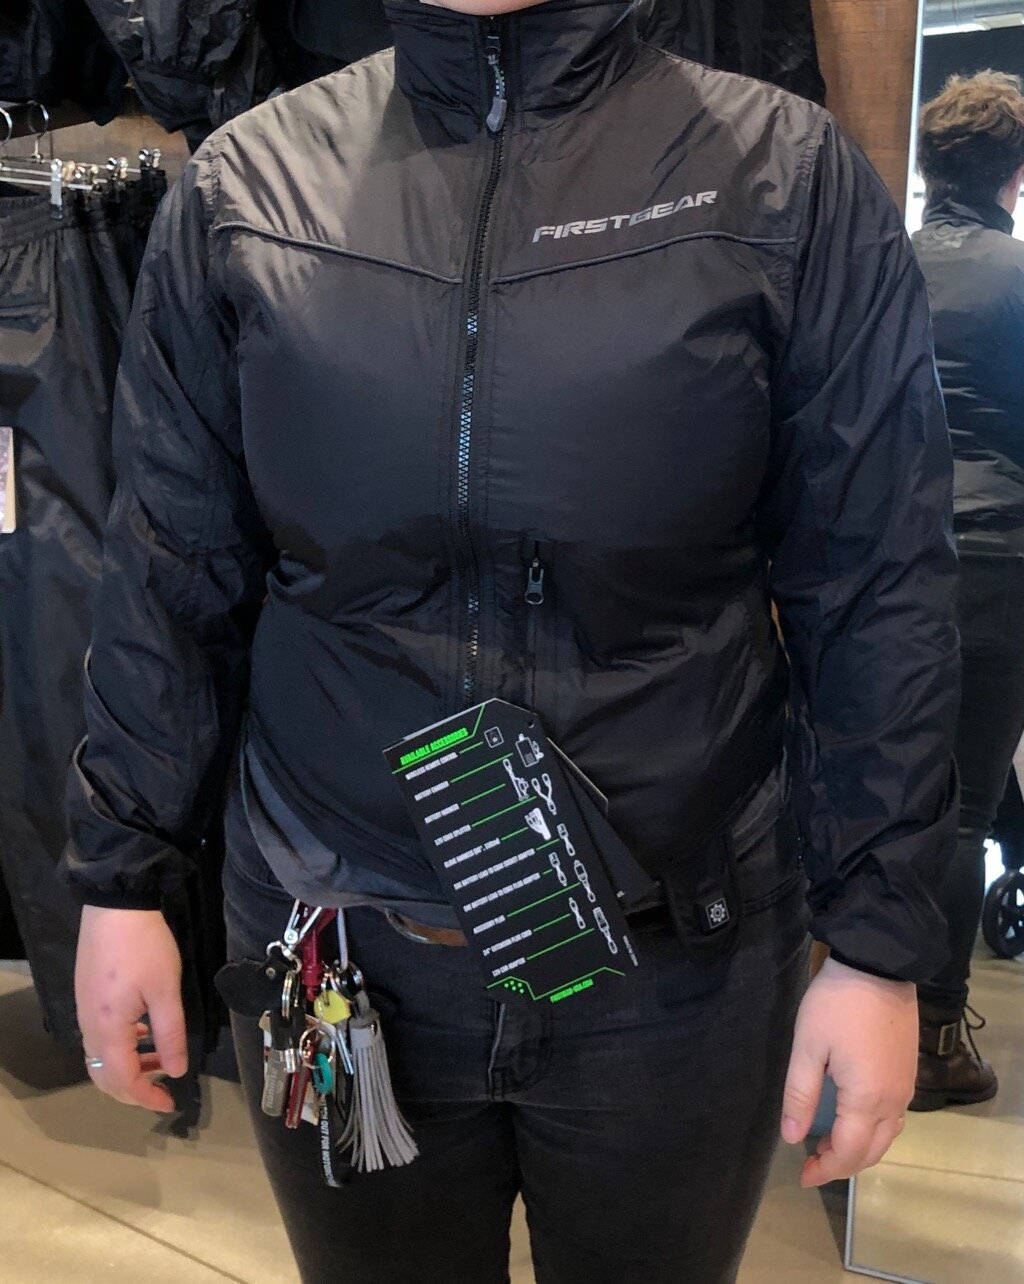 New Women's FirstGear Heated Jacket Liner for 2019/2020